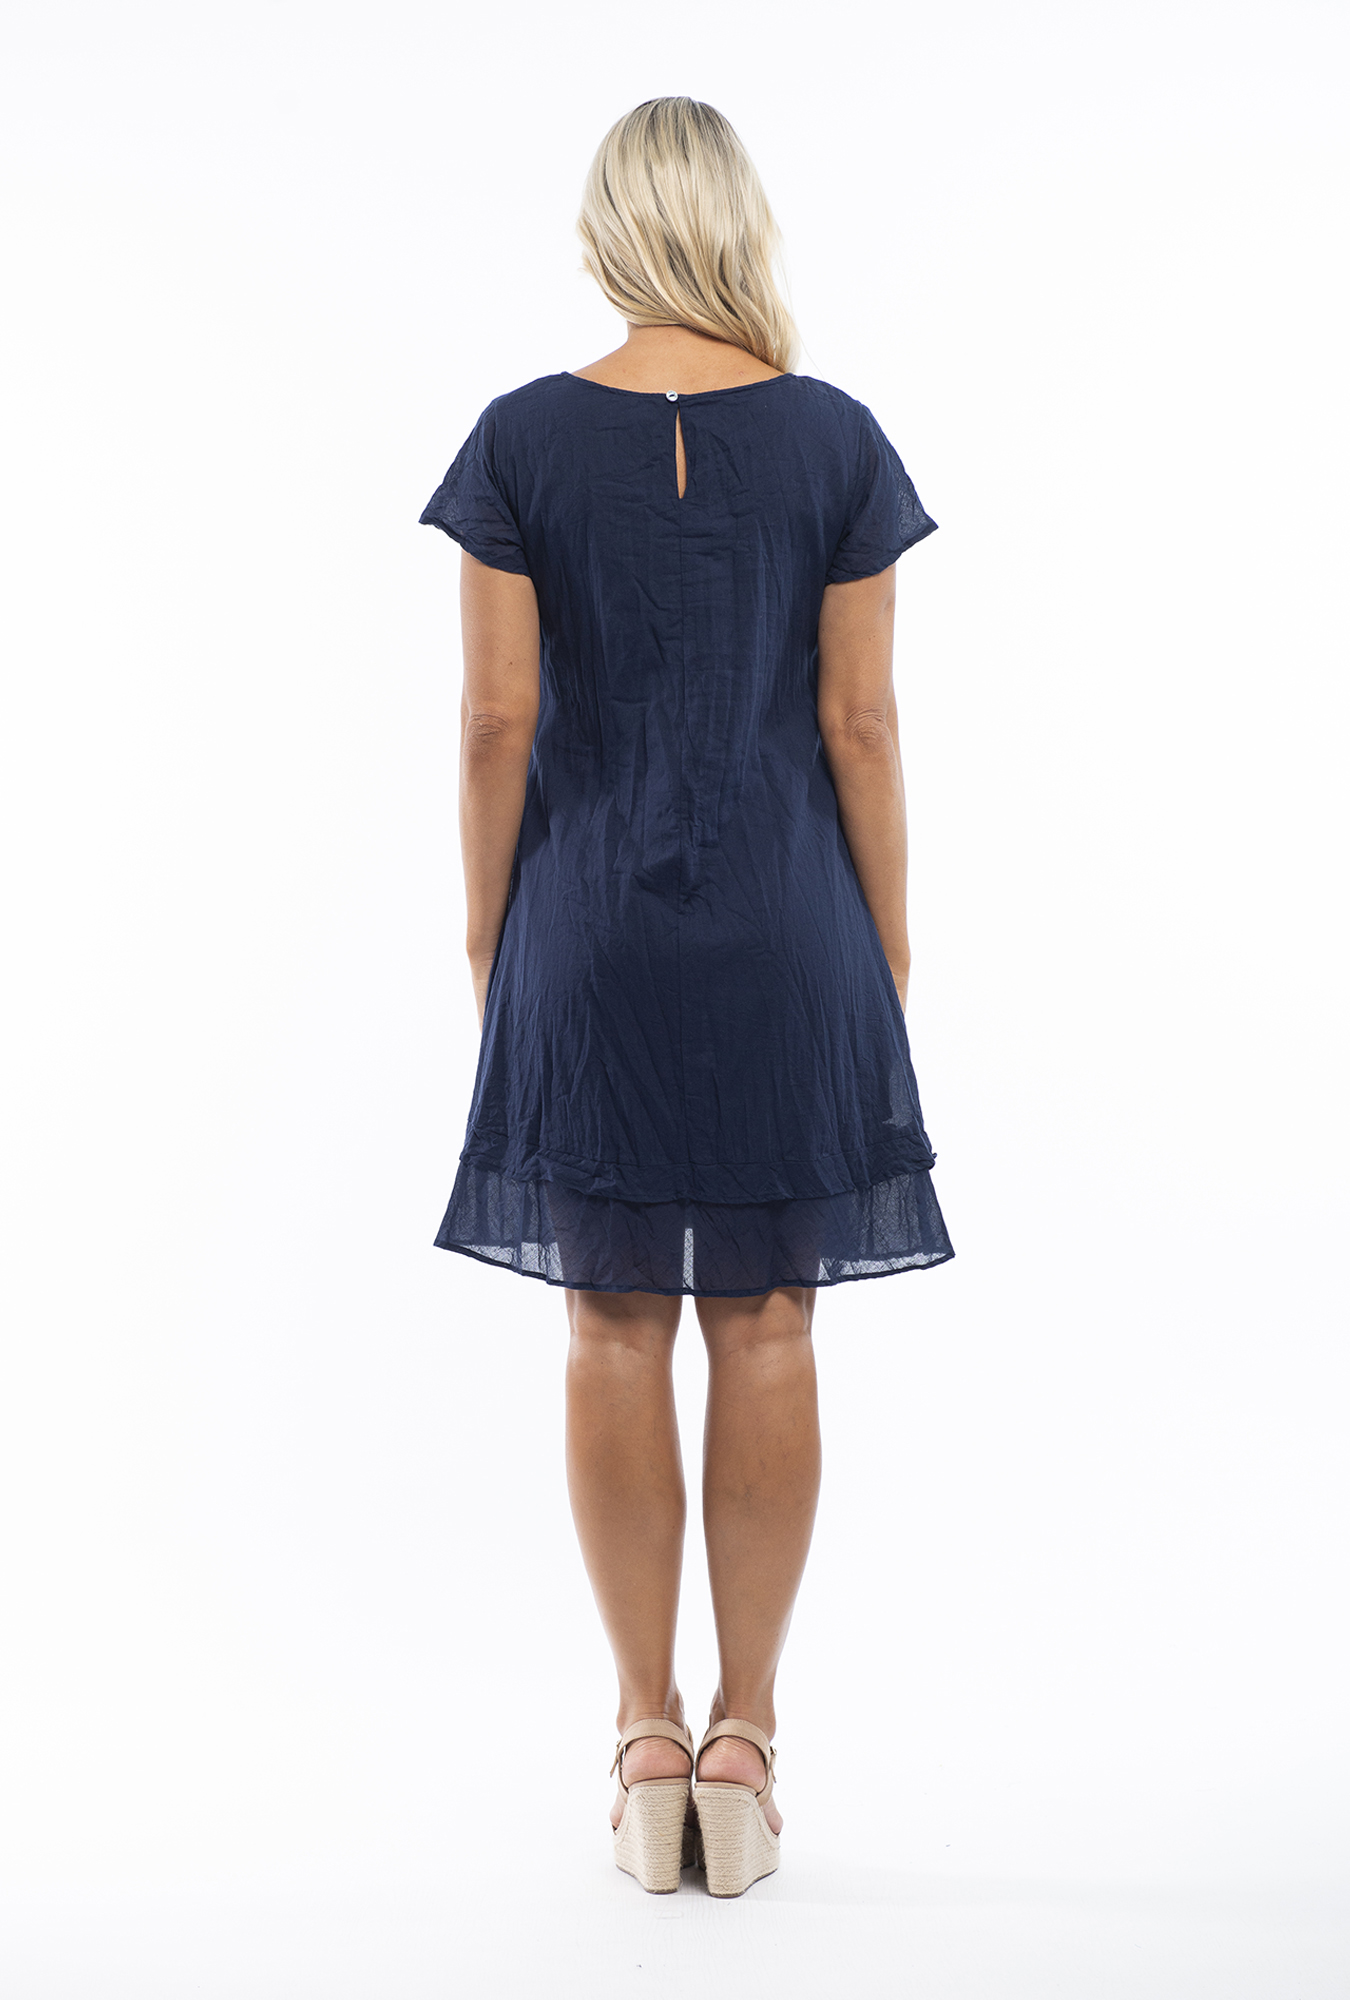 Stacey Dress in Navy